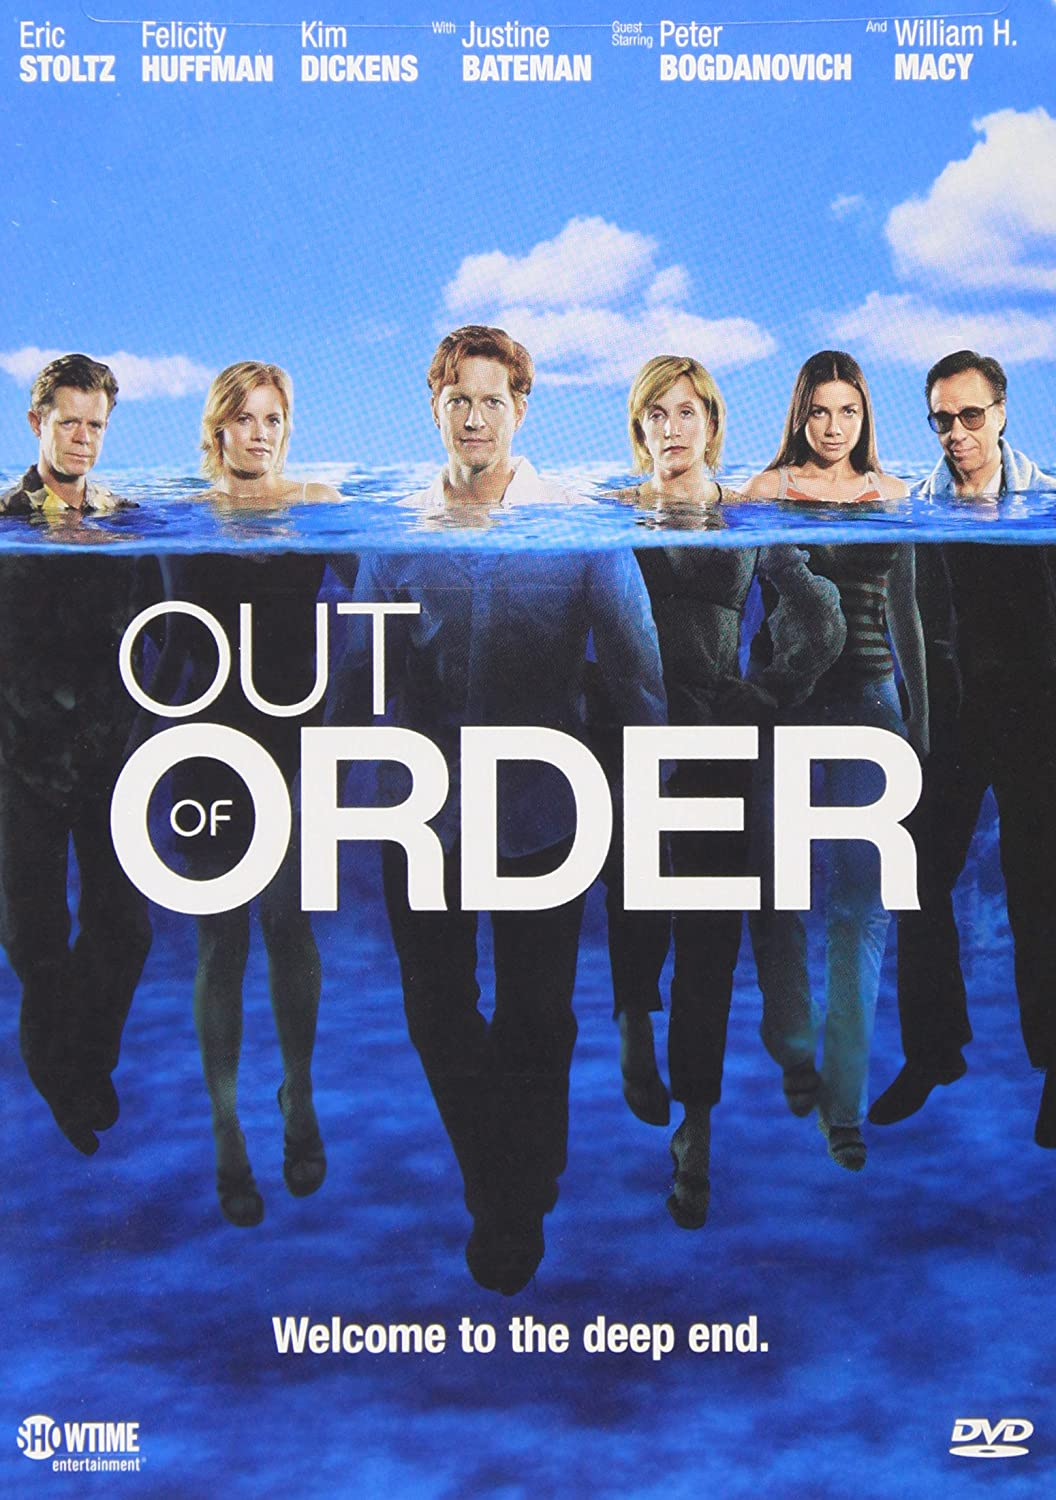 Amazon Com Out Of Order Eric Stoltz Felicity Huffman Kim